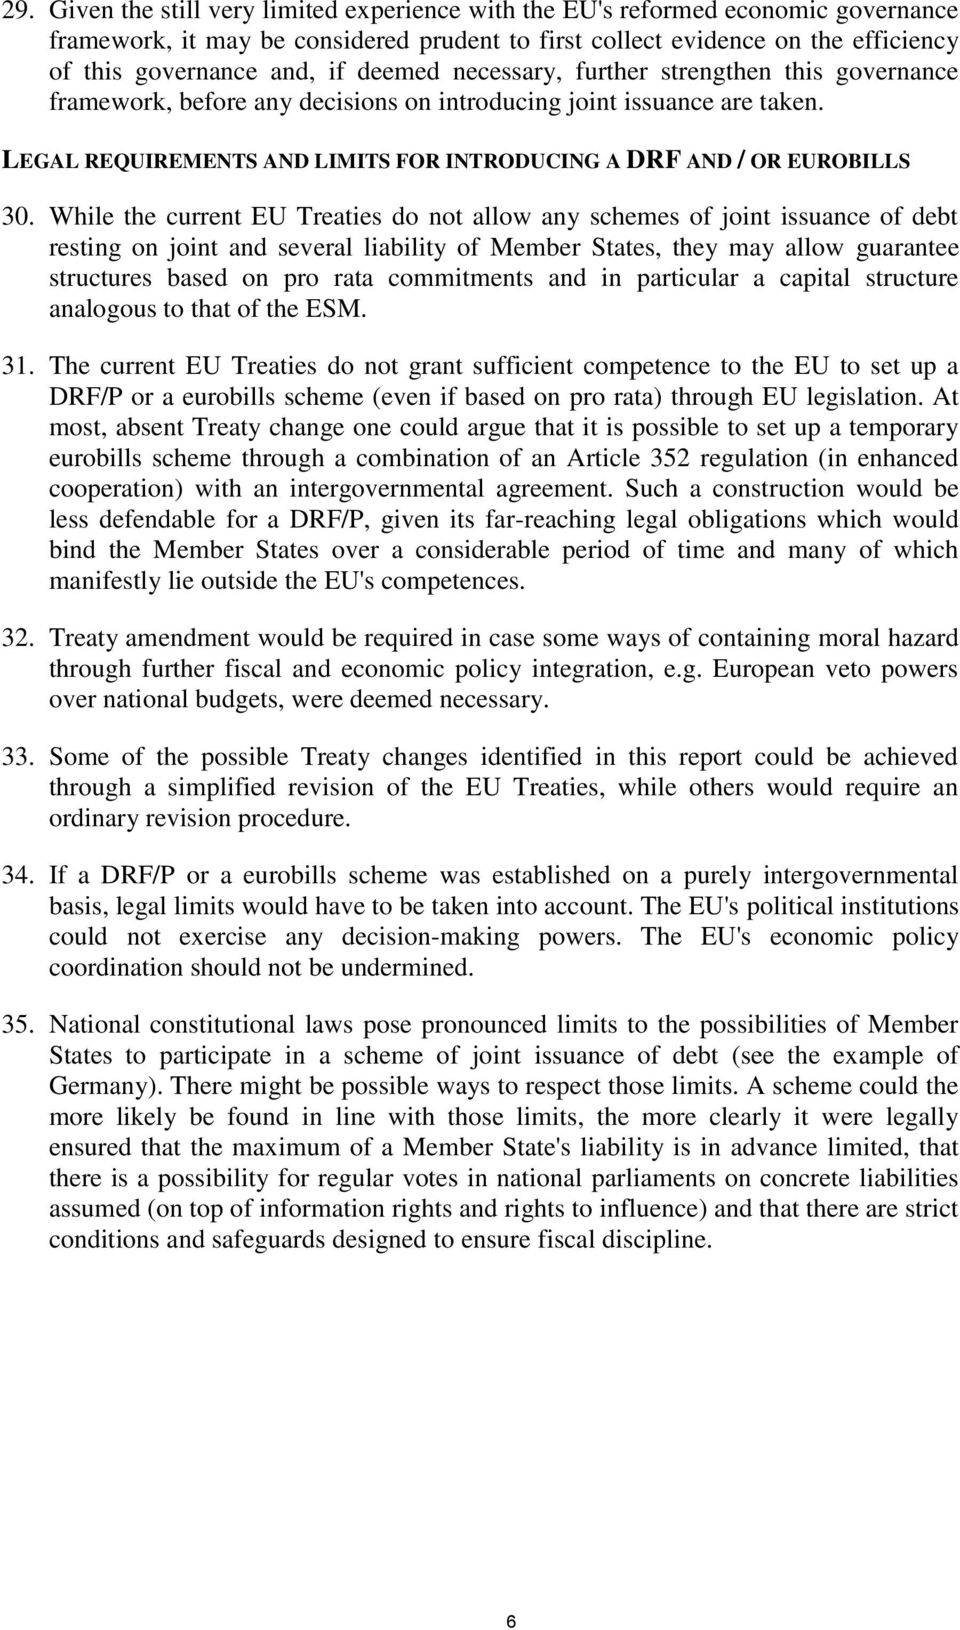 While the current EU Treaties do not allow any schemes of joint issuance of debt resting on joint and several liability of Member States, they may allow guarantee structures based on pro rata